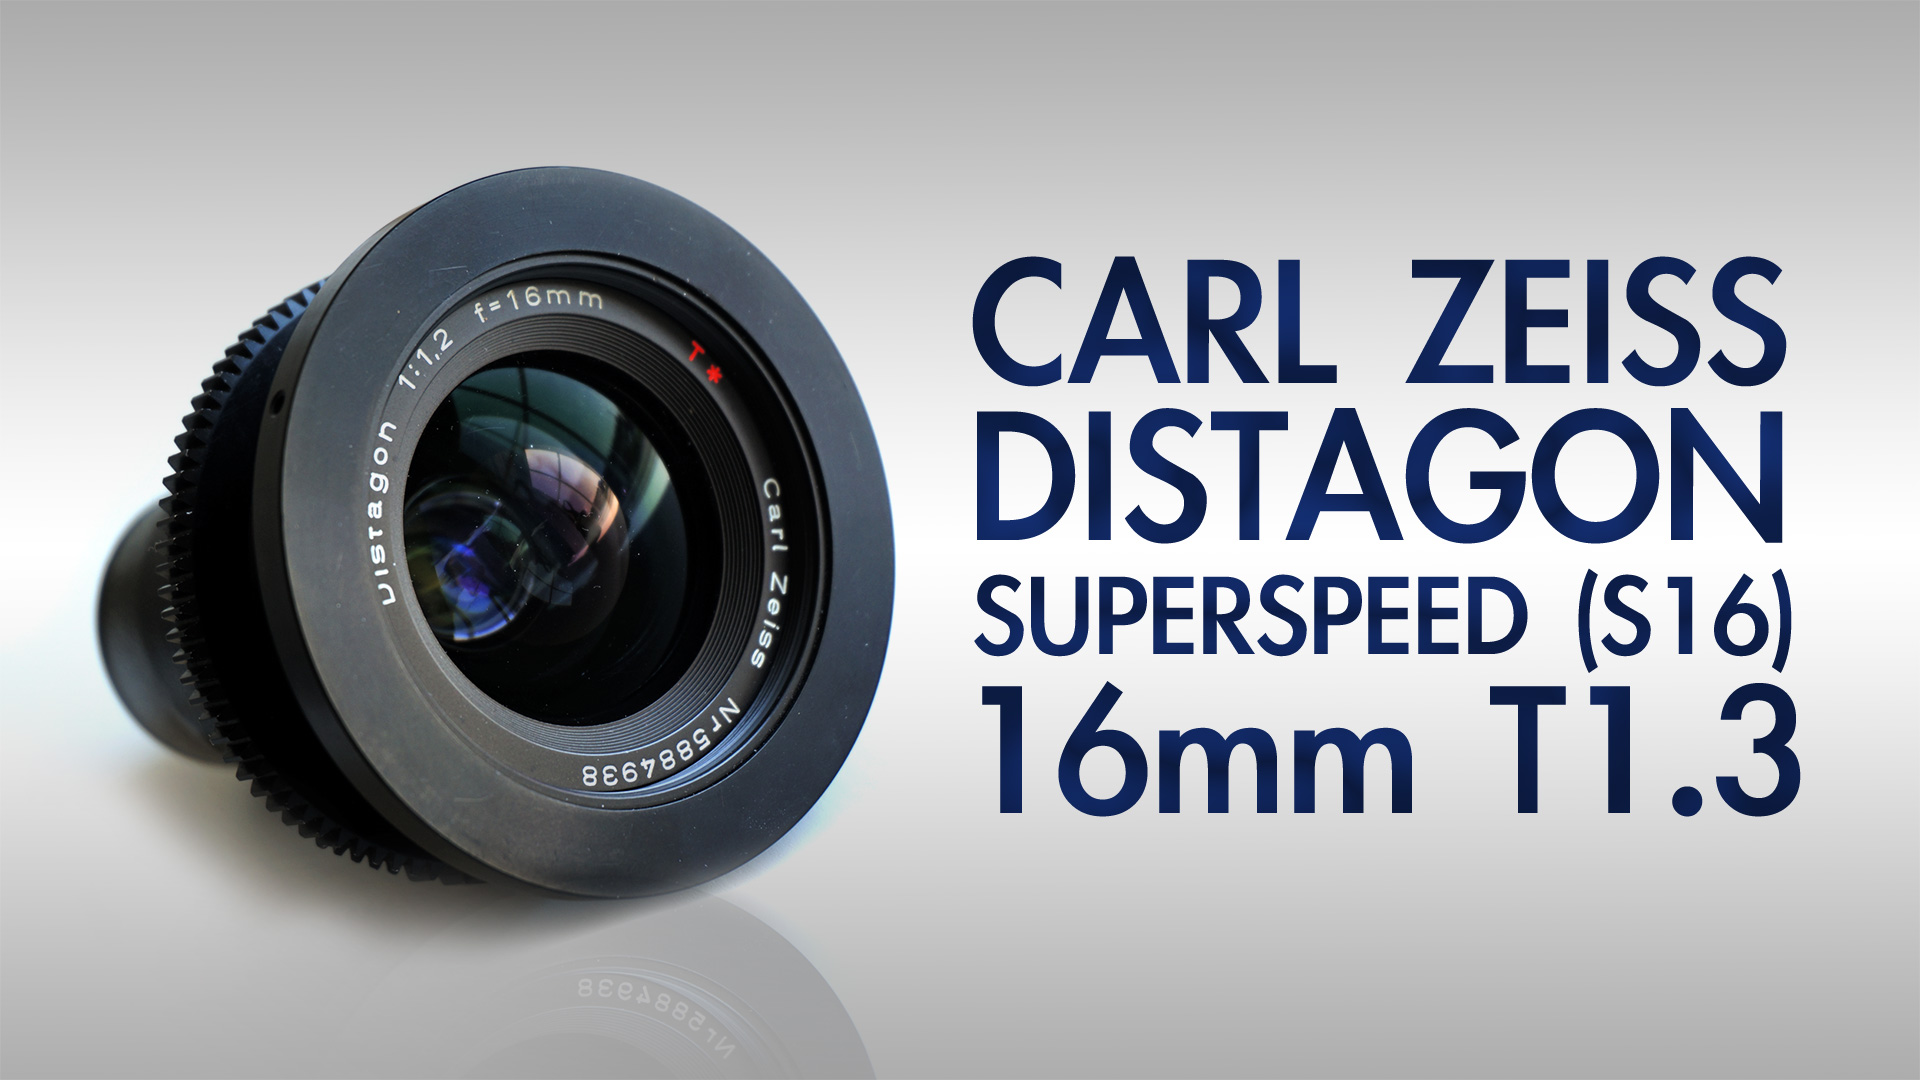 Carl Zeiss Superspeed (S16) MKI 16mm F1.2 / T1.3